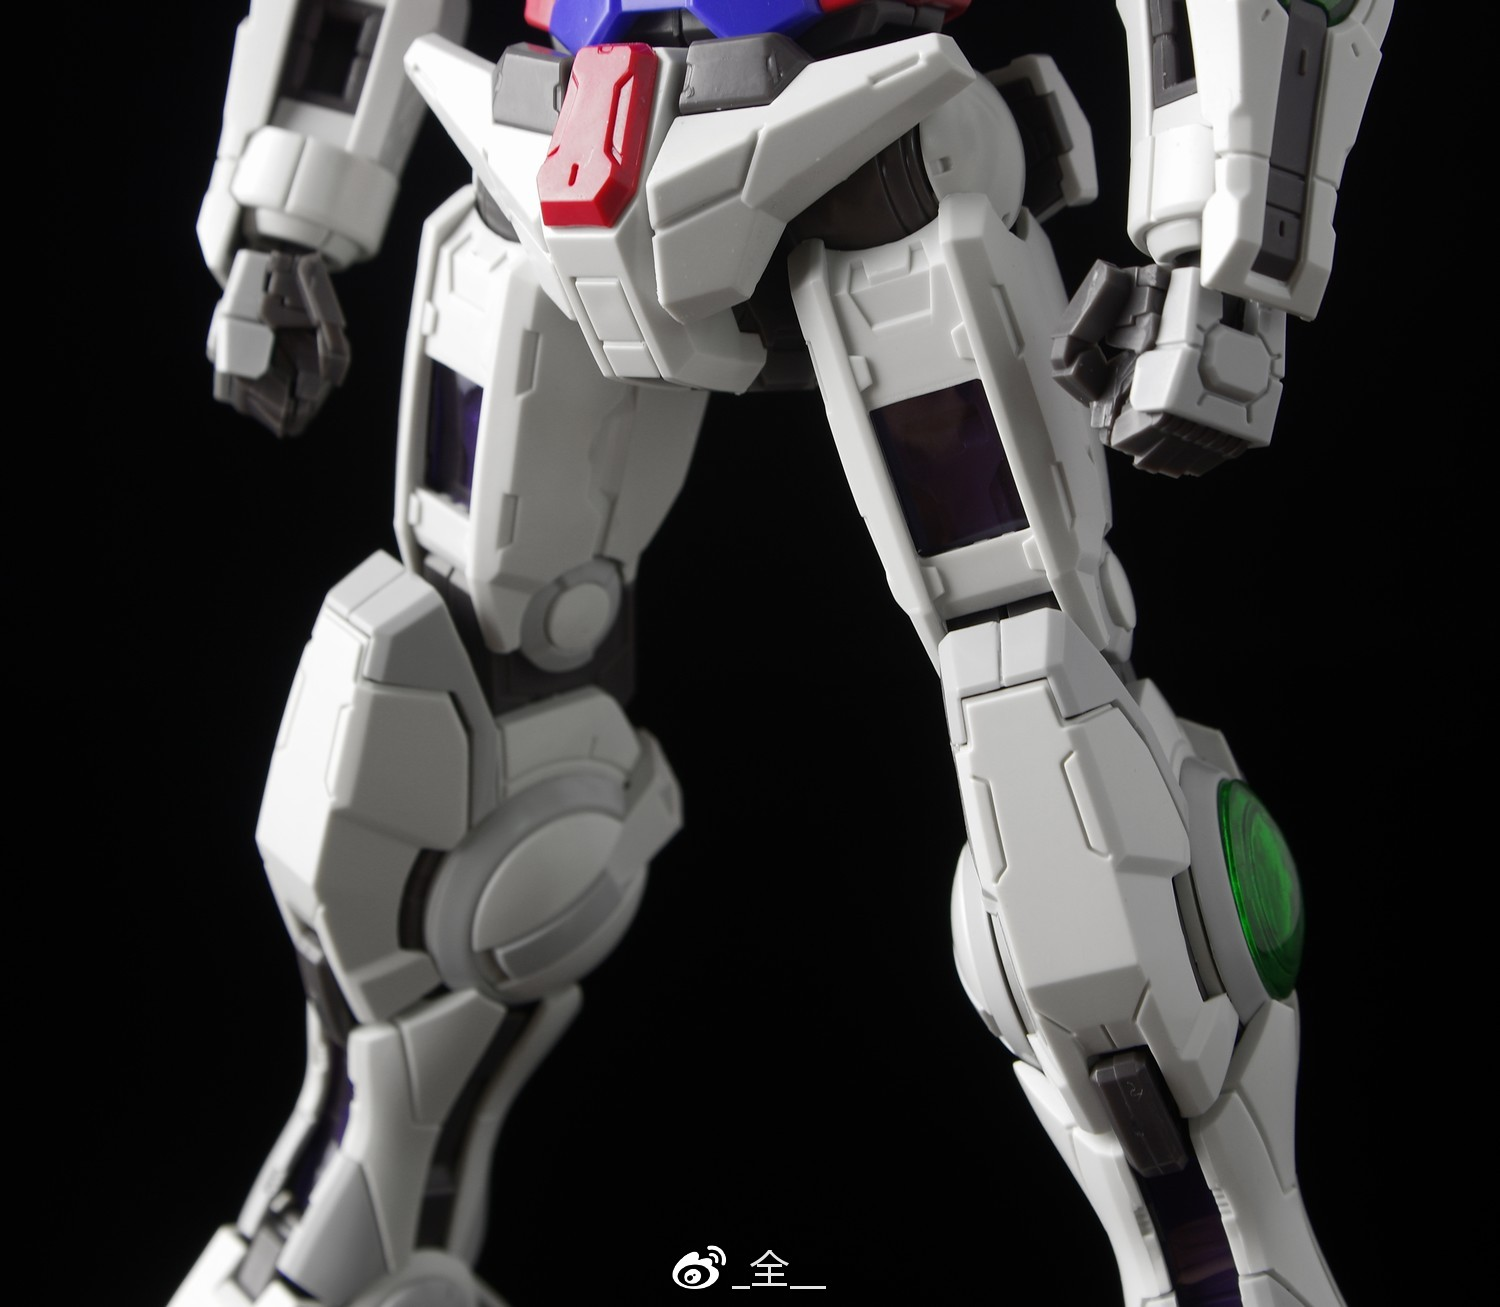 S269_mg_exia_led_hobby_star_inask_040.jpg